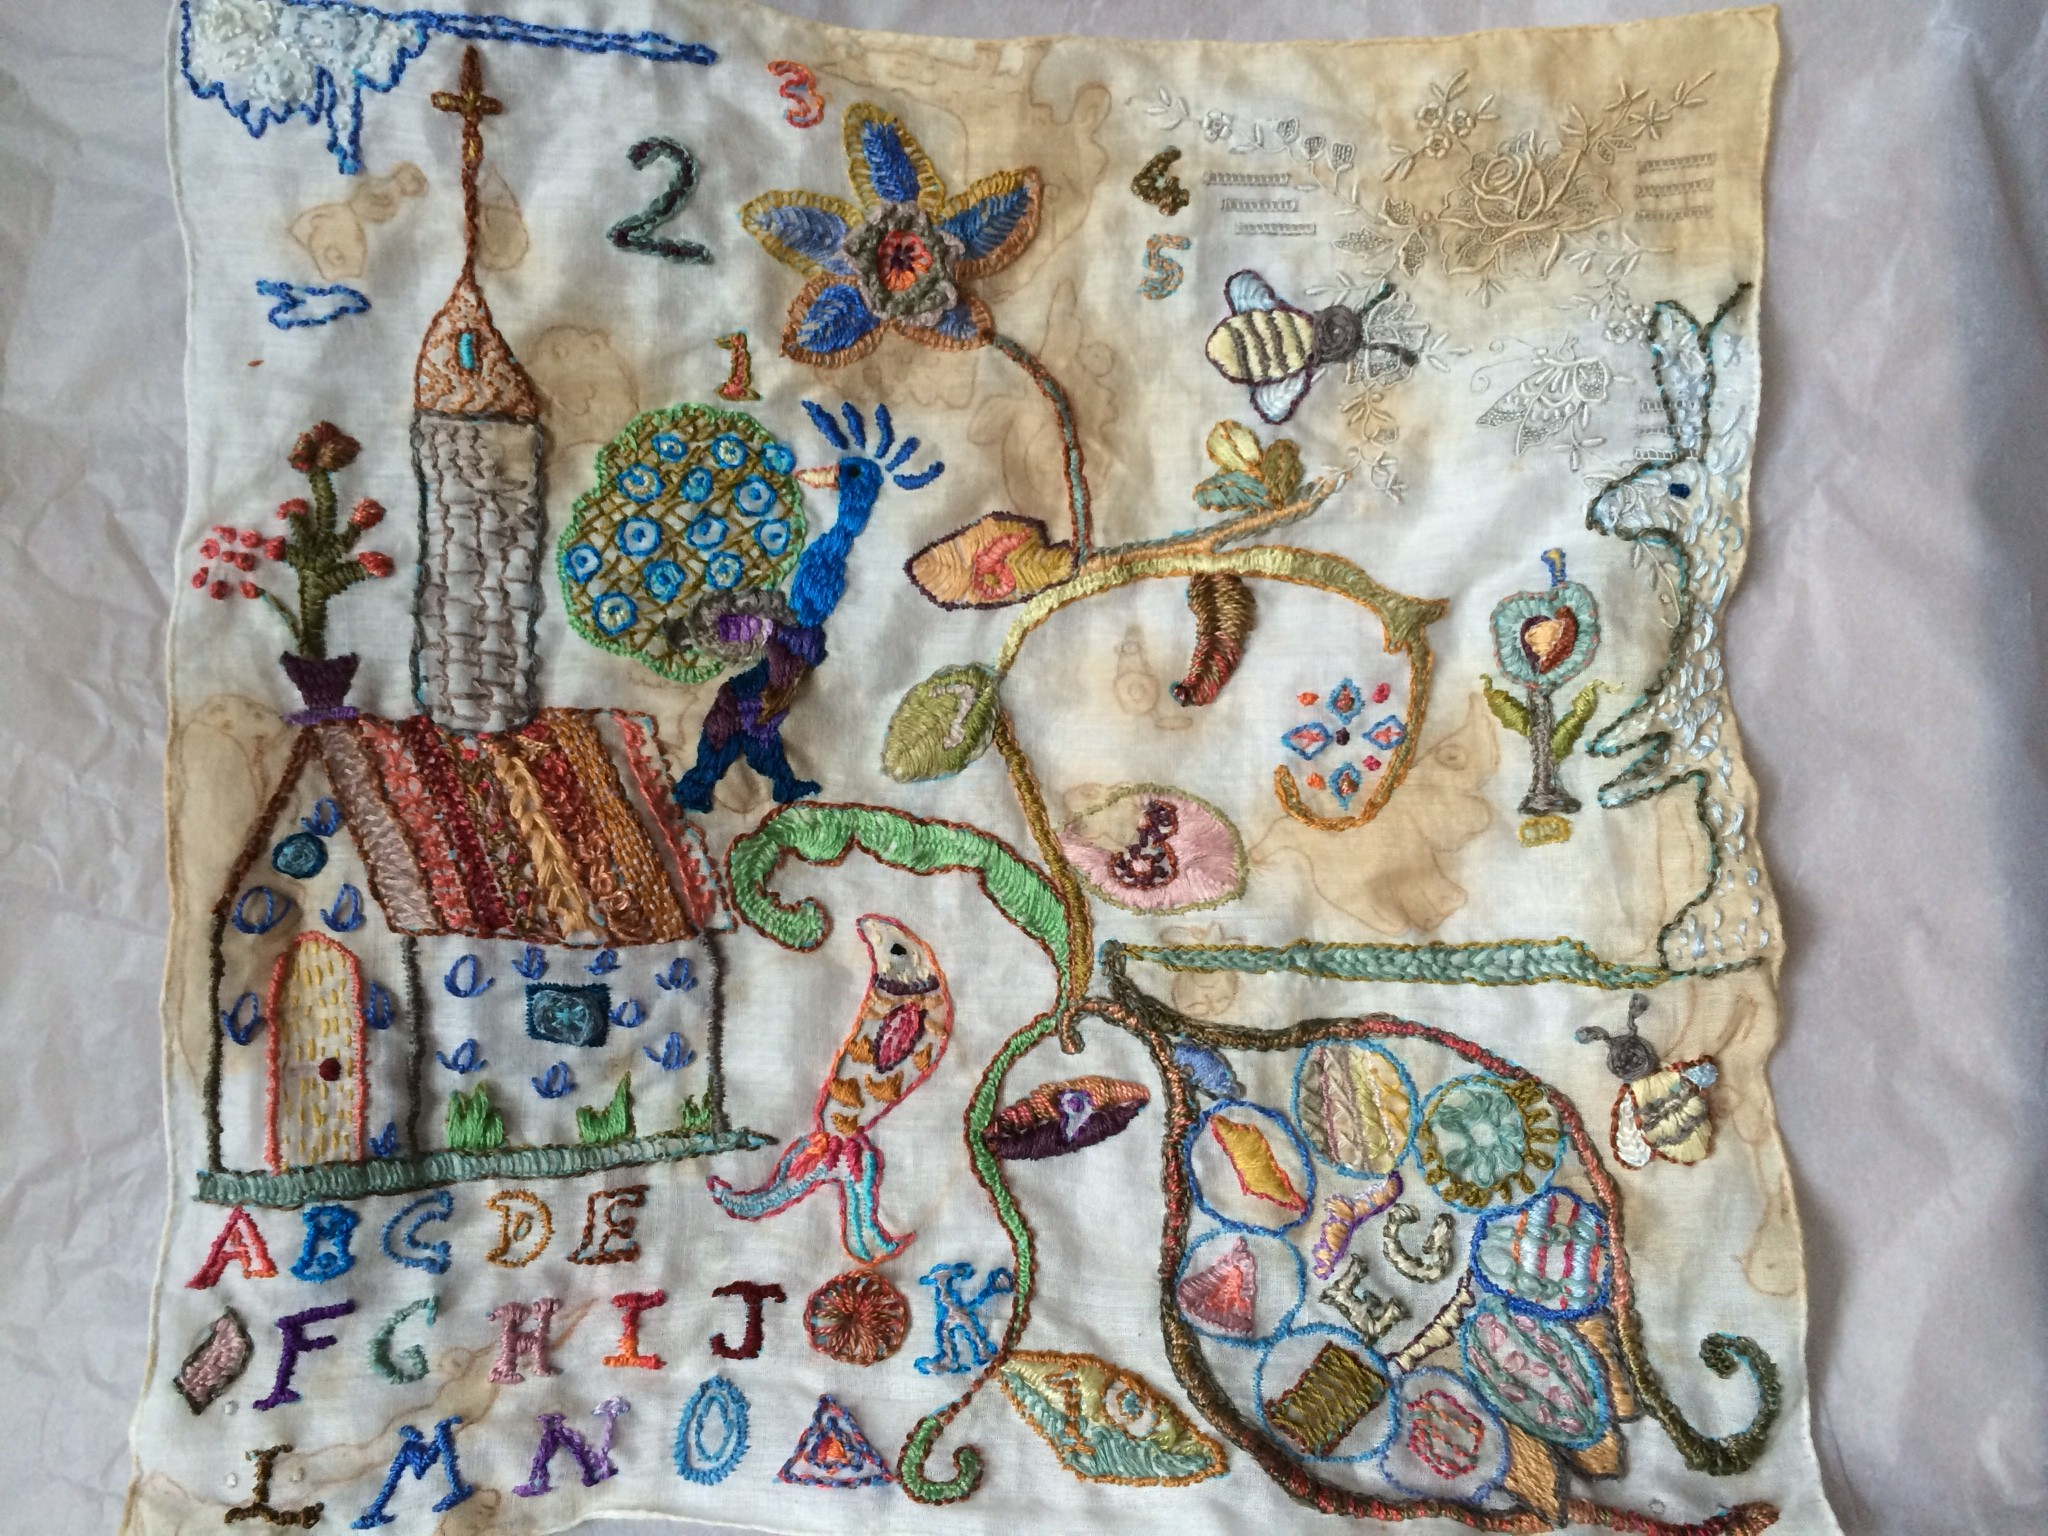 This piece was hand embroidered for the Traces 'Lives, loves and loss' exhibition at Fenton House. This has been a fantastic experience being part of an exhibition involving artists and makers from all disciplines and encompassing all the senses.